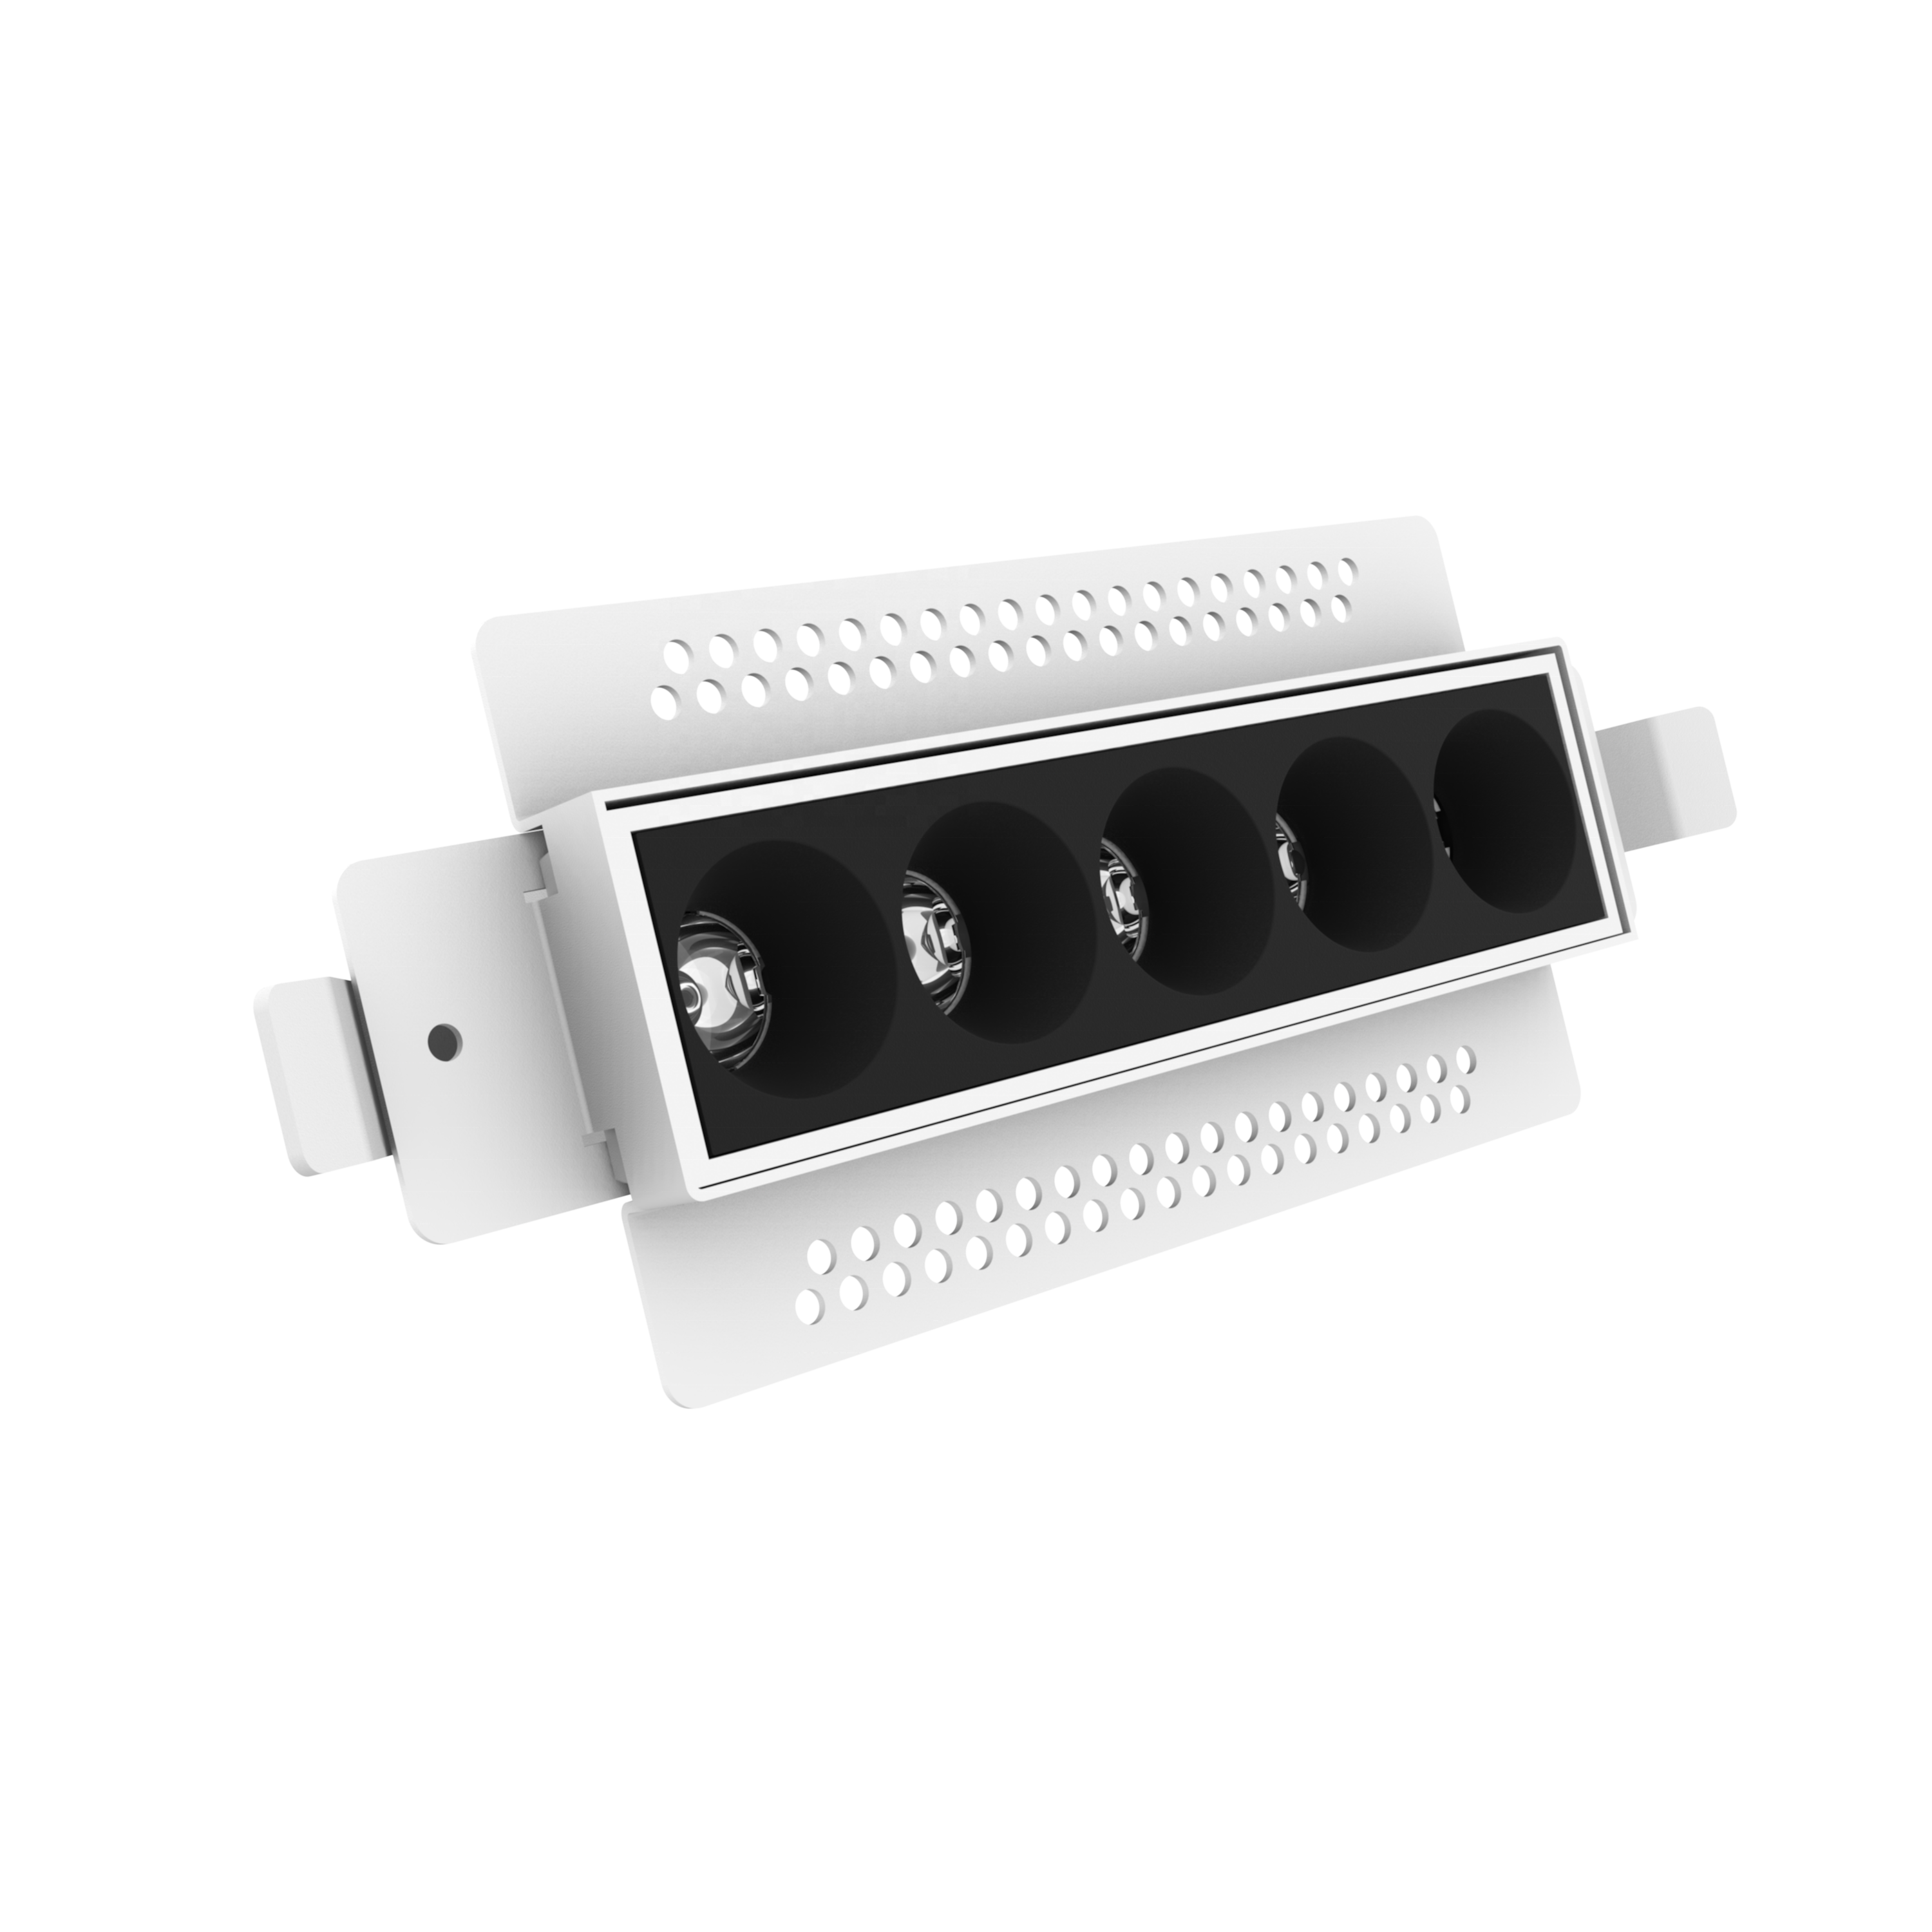 VELLNICE Trimless 10W LED Grille led fire rated downlight  antiglared function five heads light